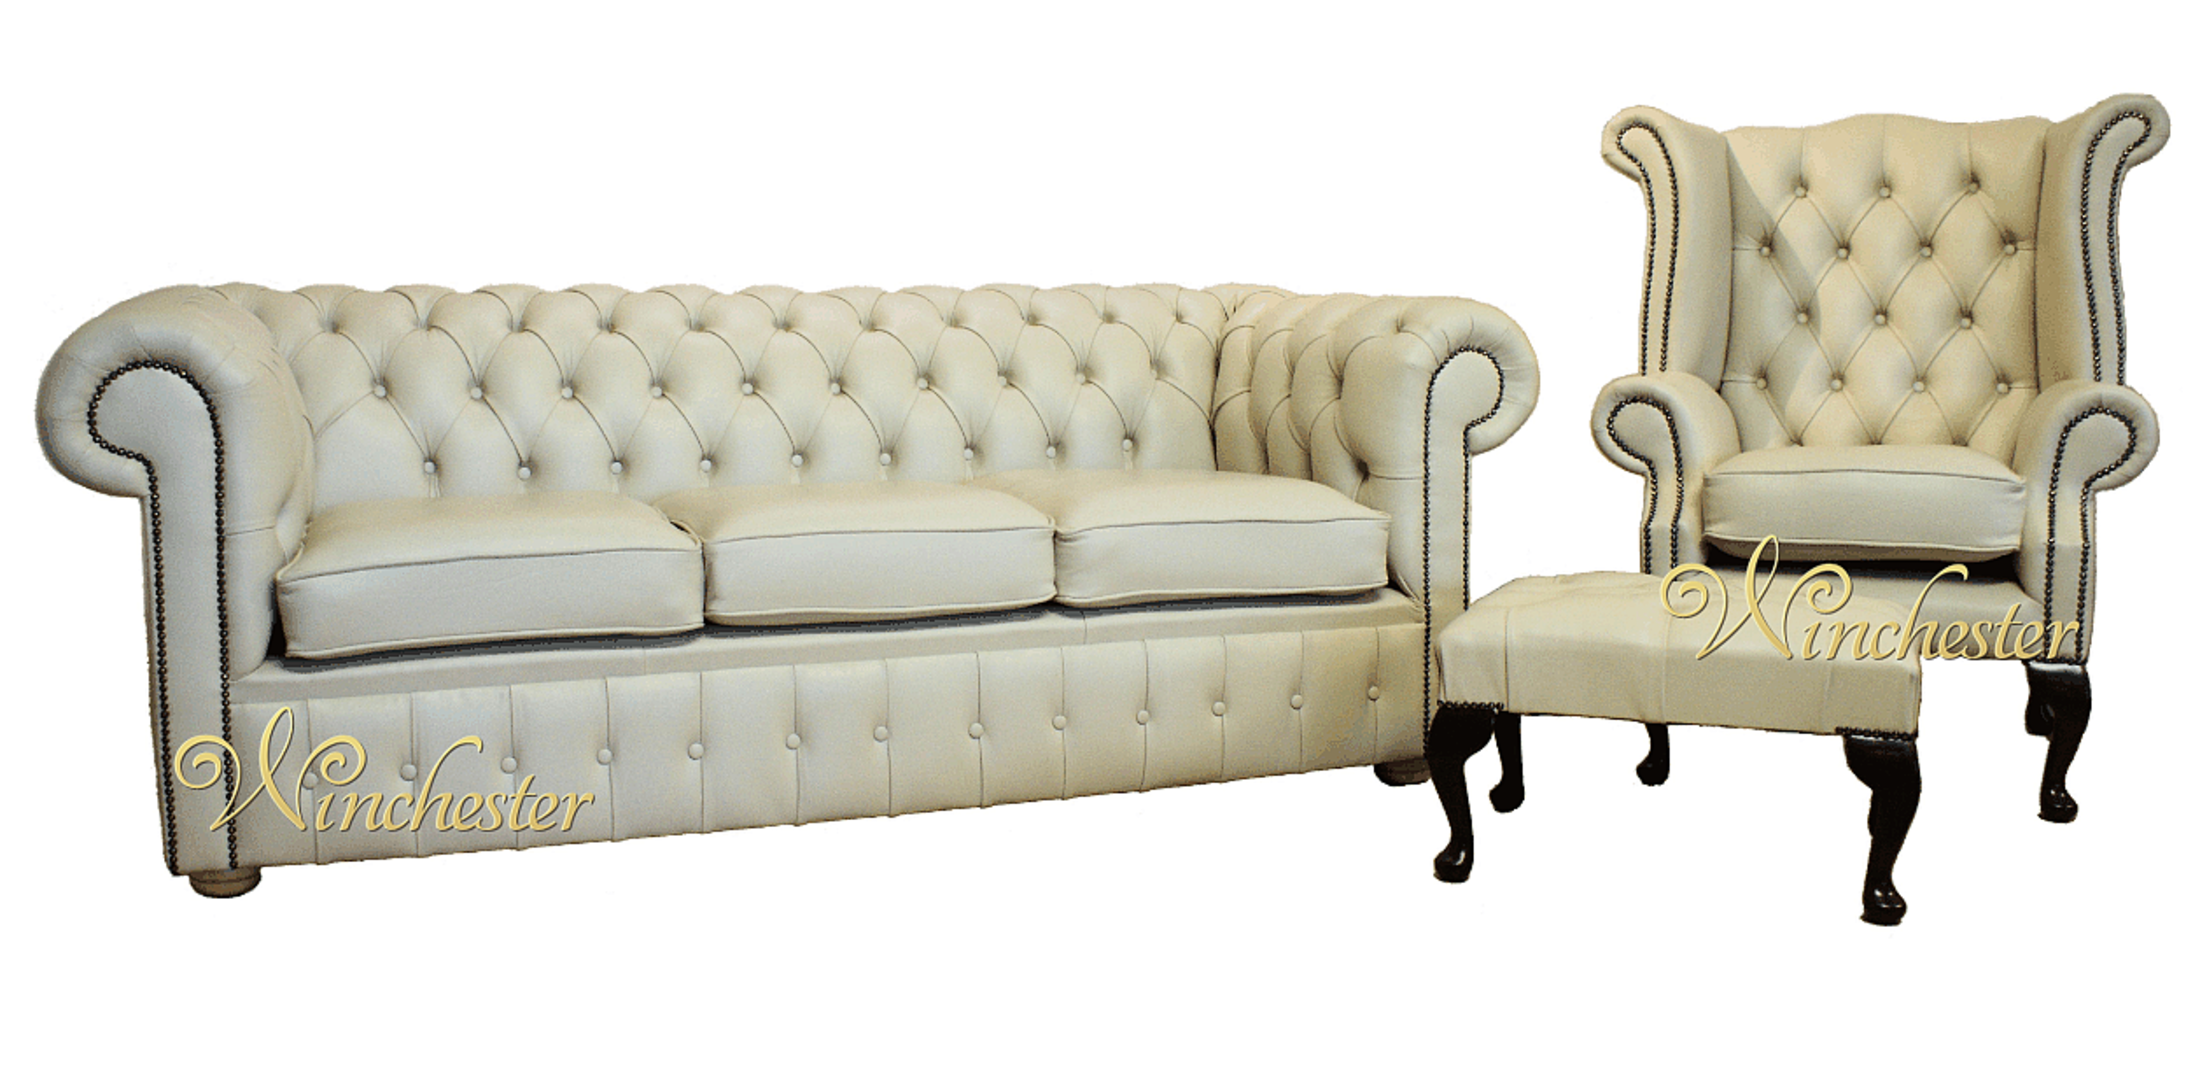 Delicieux Chesterfield Cream Leather Sofa Suite Wc